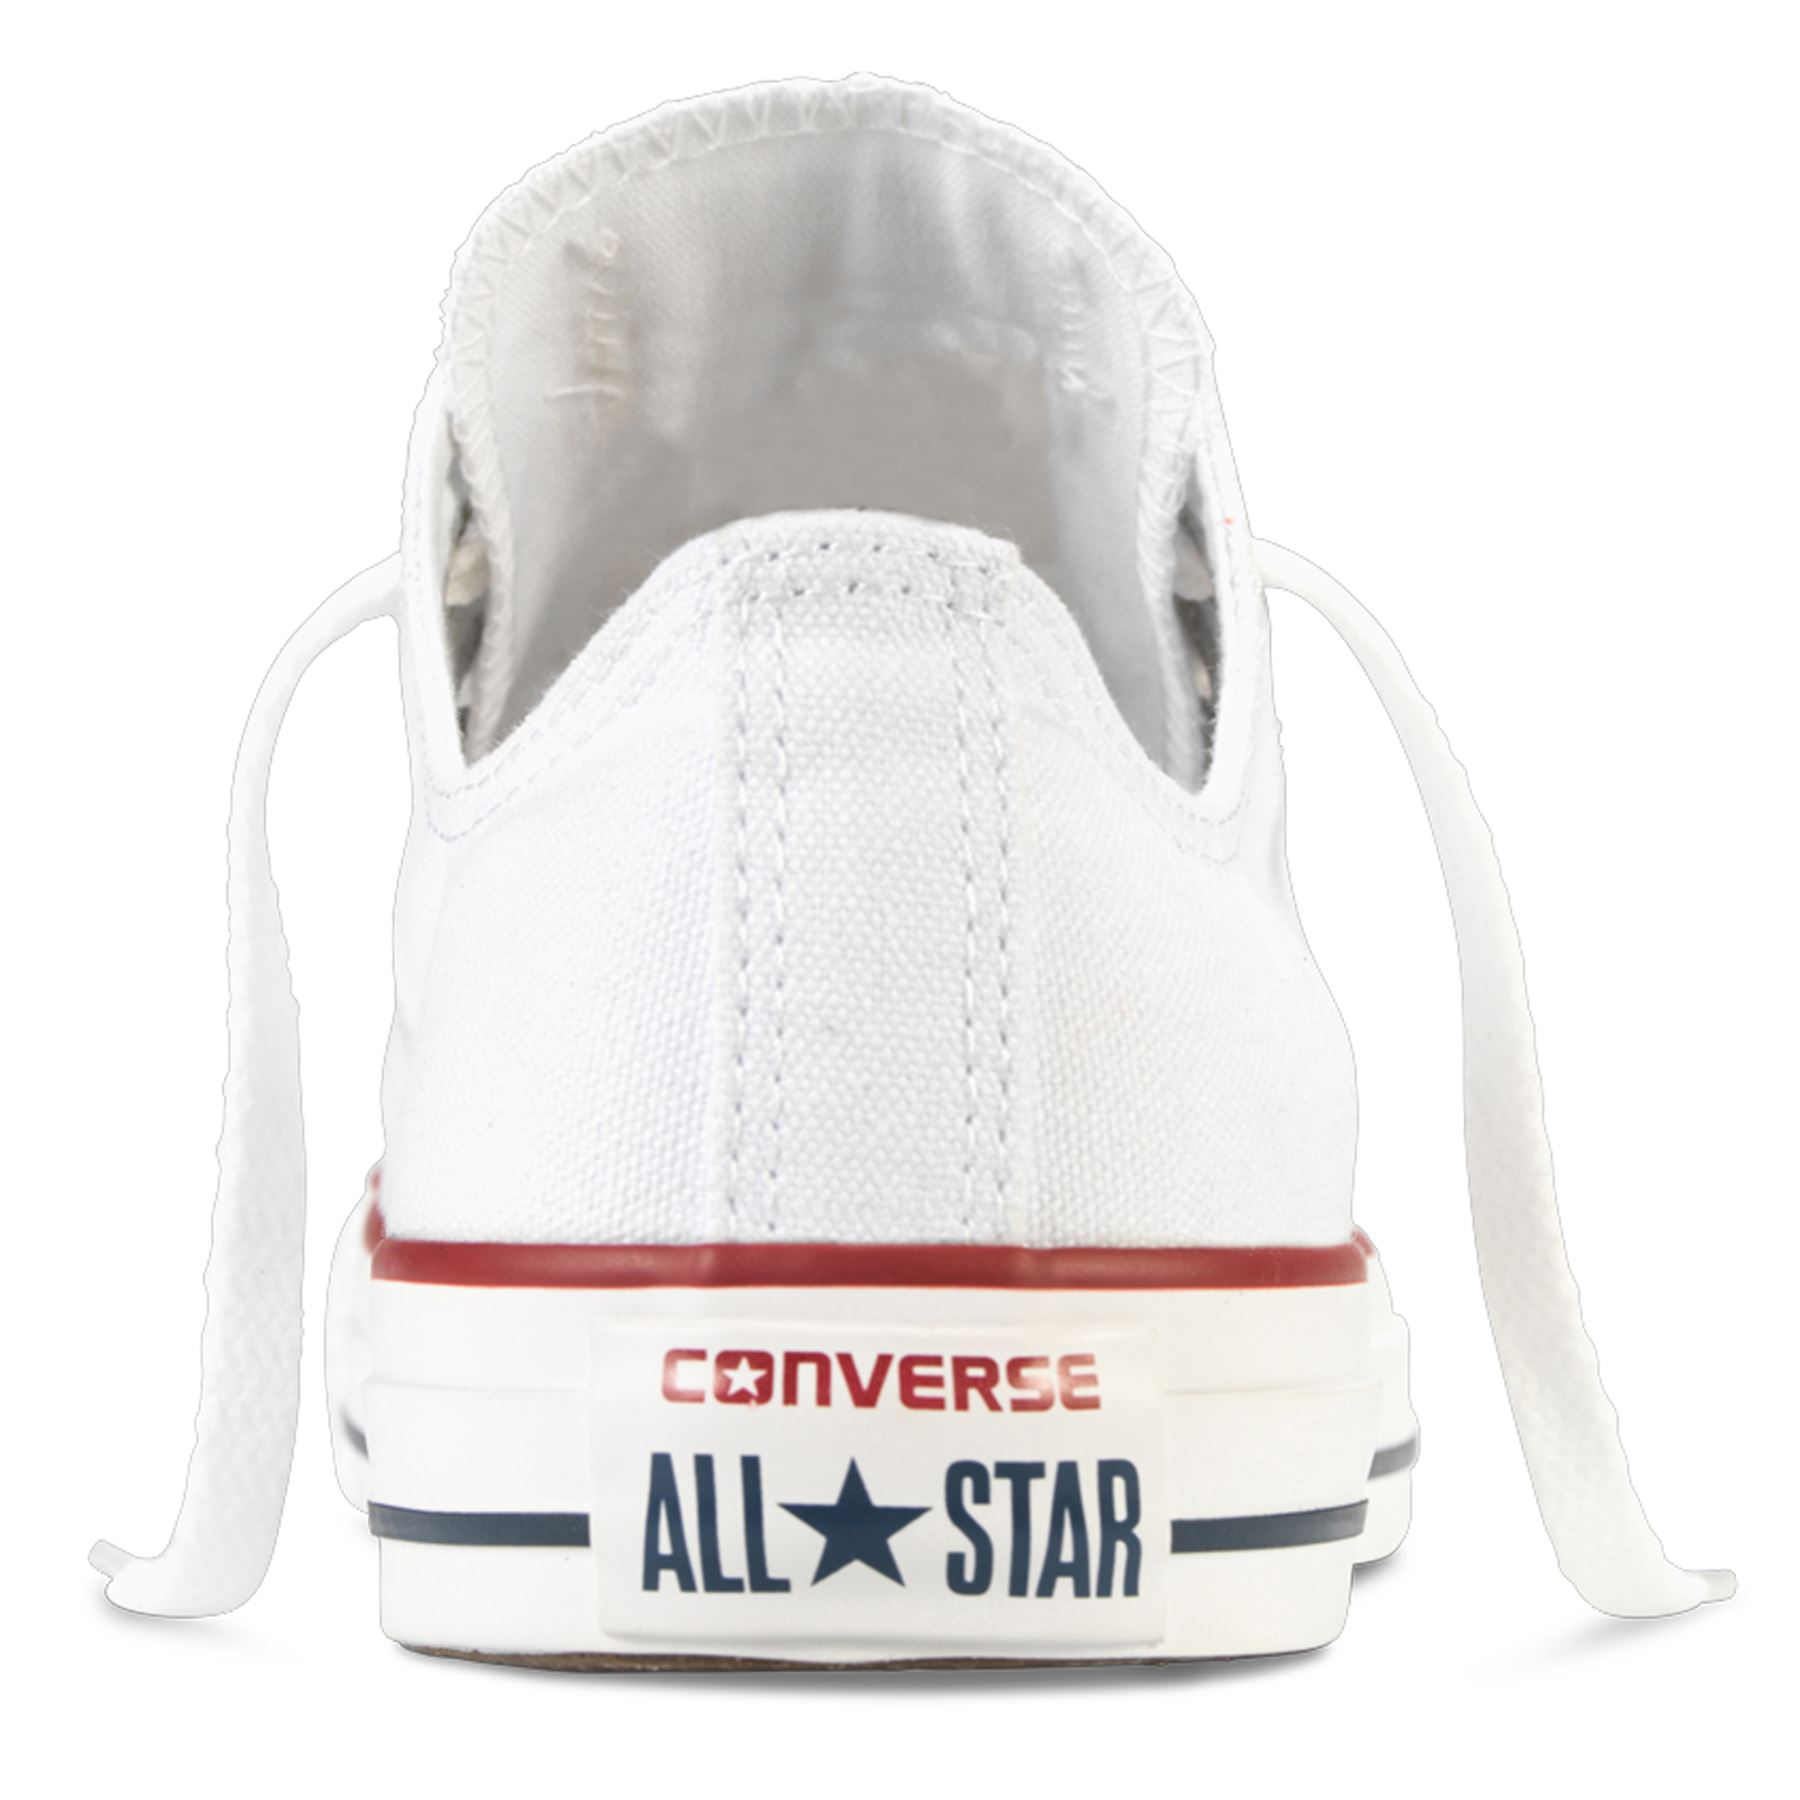 Converse-All-Star-Unisex-Chuck-Taylor-New-Mens-Womens-Low-Tops-Trainers-Pumps thumbnail 30